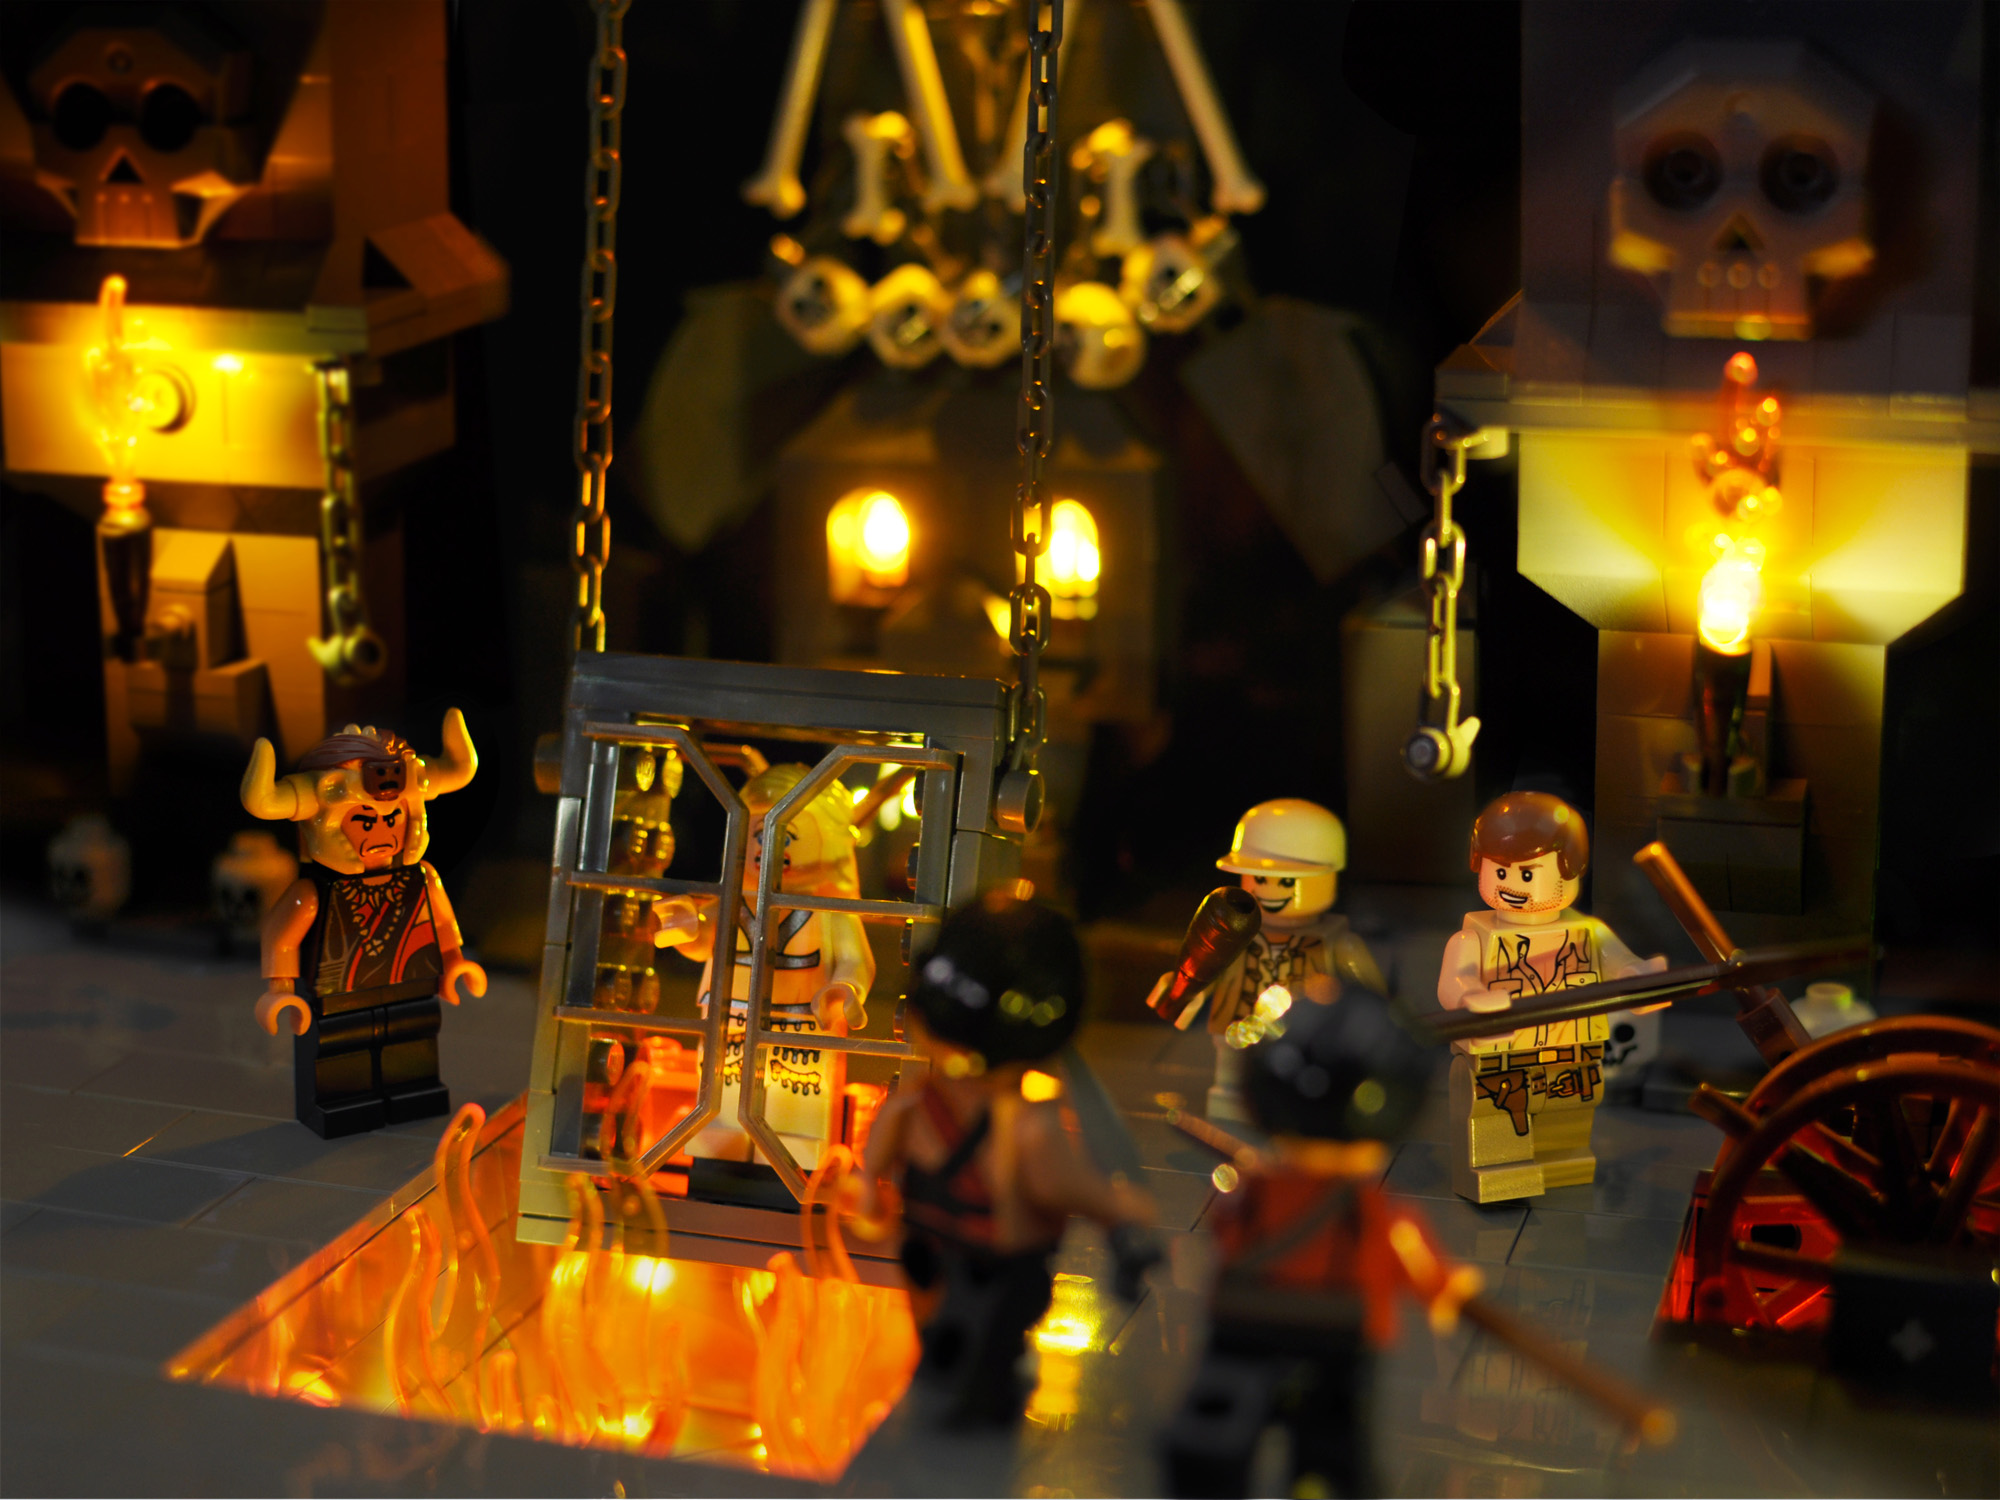 A look at the Lego Indiana Jones minifigures from 2008-2009.